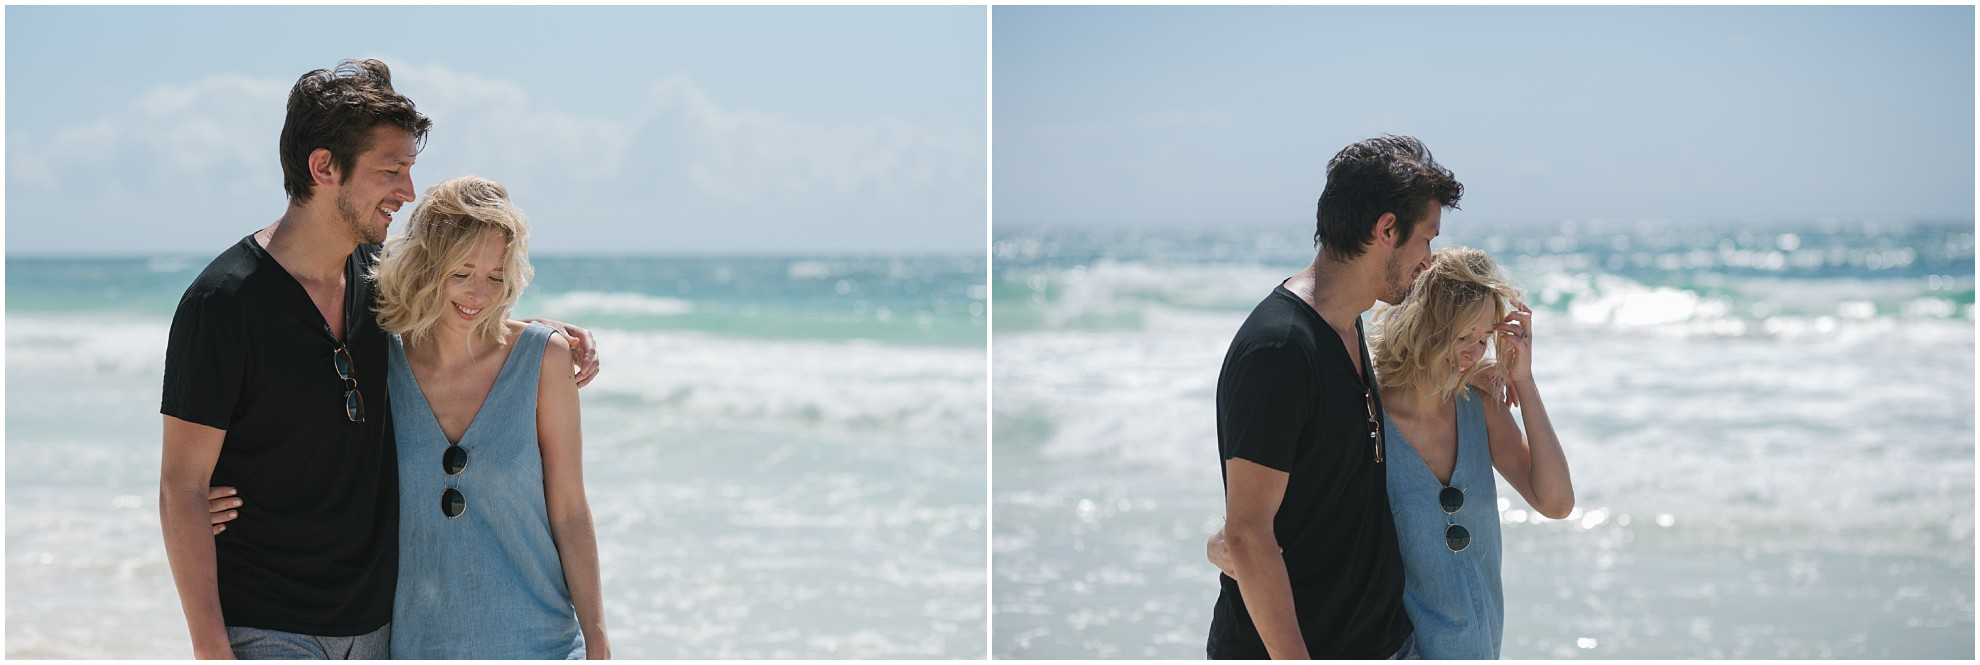 tulum-wedding-photographer-0013